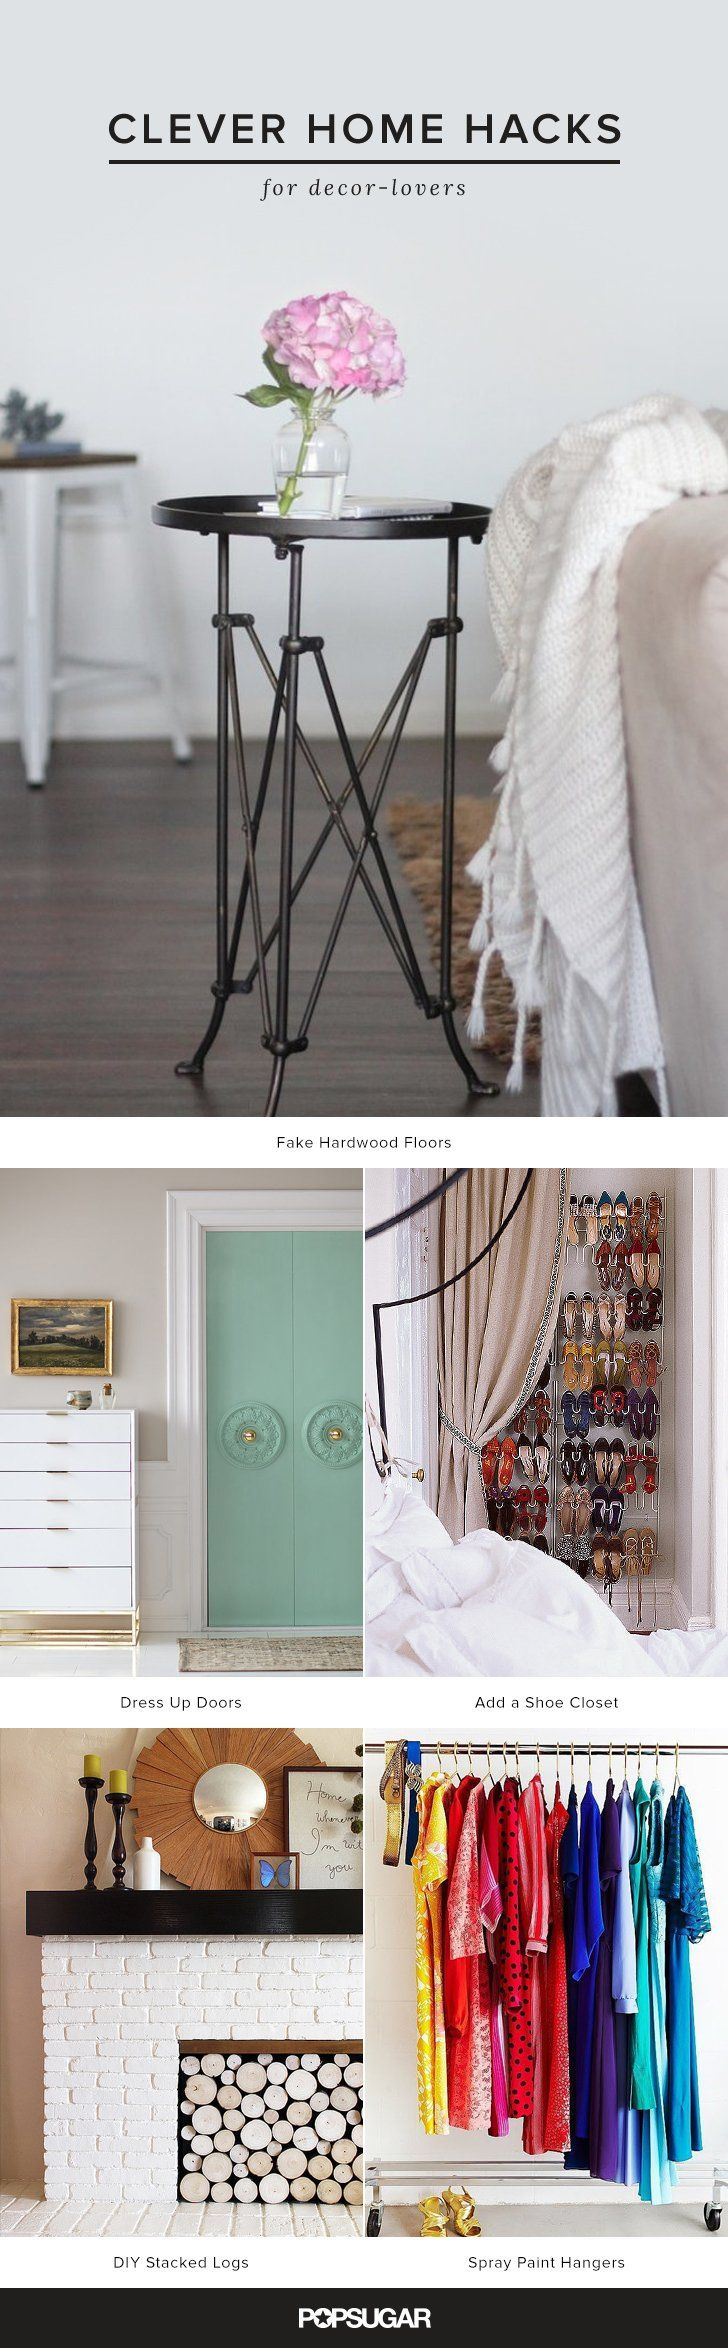 30 Clever Home Hacks For Decor-Lovers